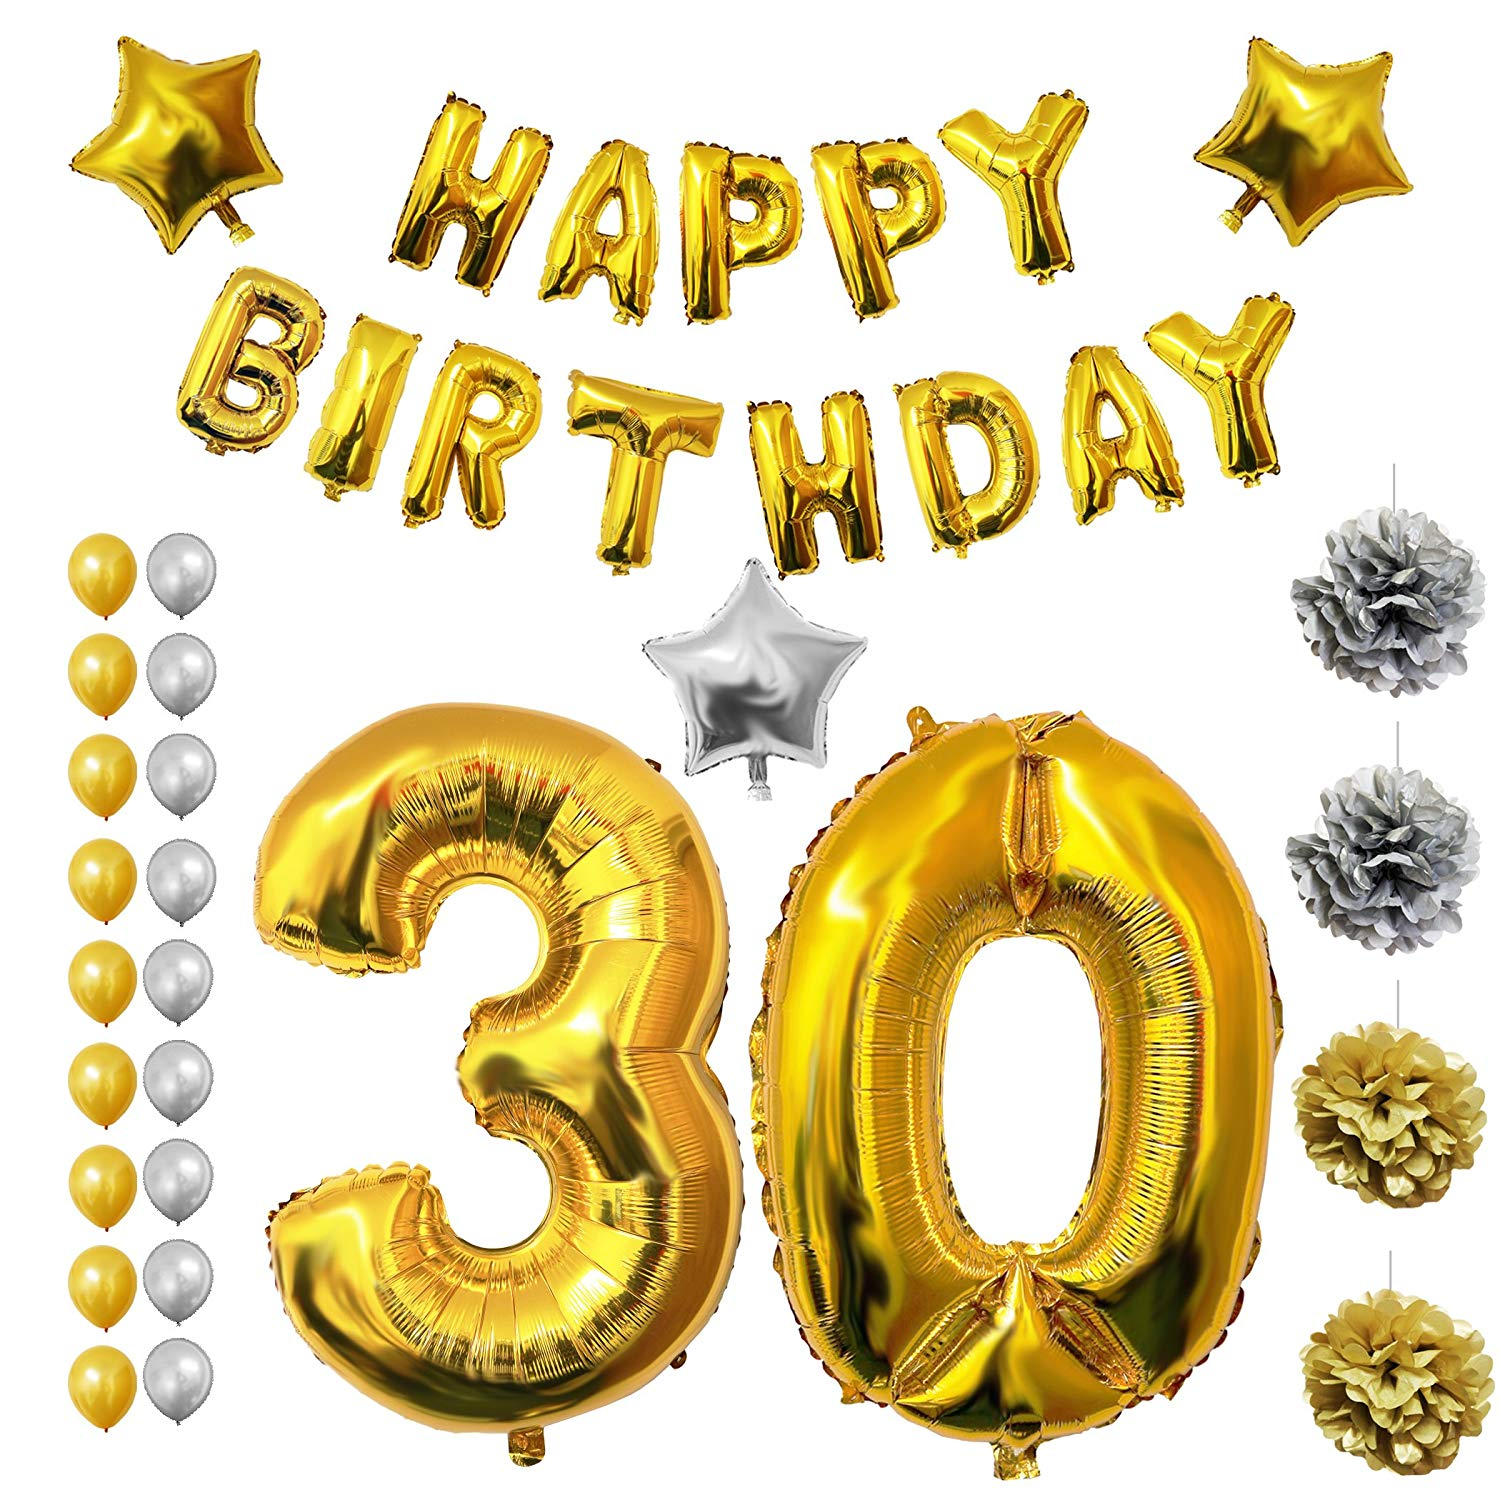 """30th Happy Birthday Party Balloons, Supplies & Decorations by Belle Vous - 26 Pcs Set - Large 30 Year Foil Balloon 12"""" Gold & Silver Latex Balloon Decoration - Decor Suitable for Adults Men & Women"""